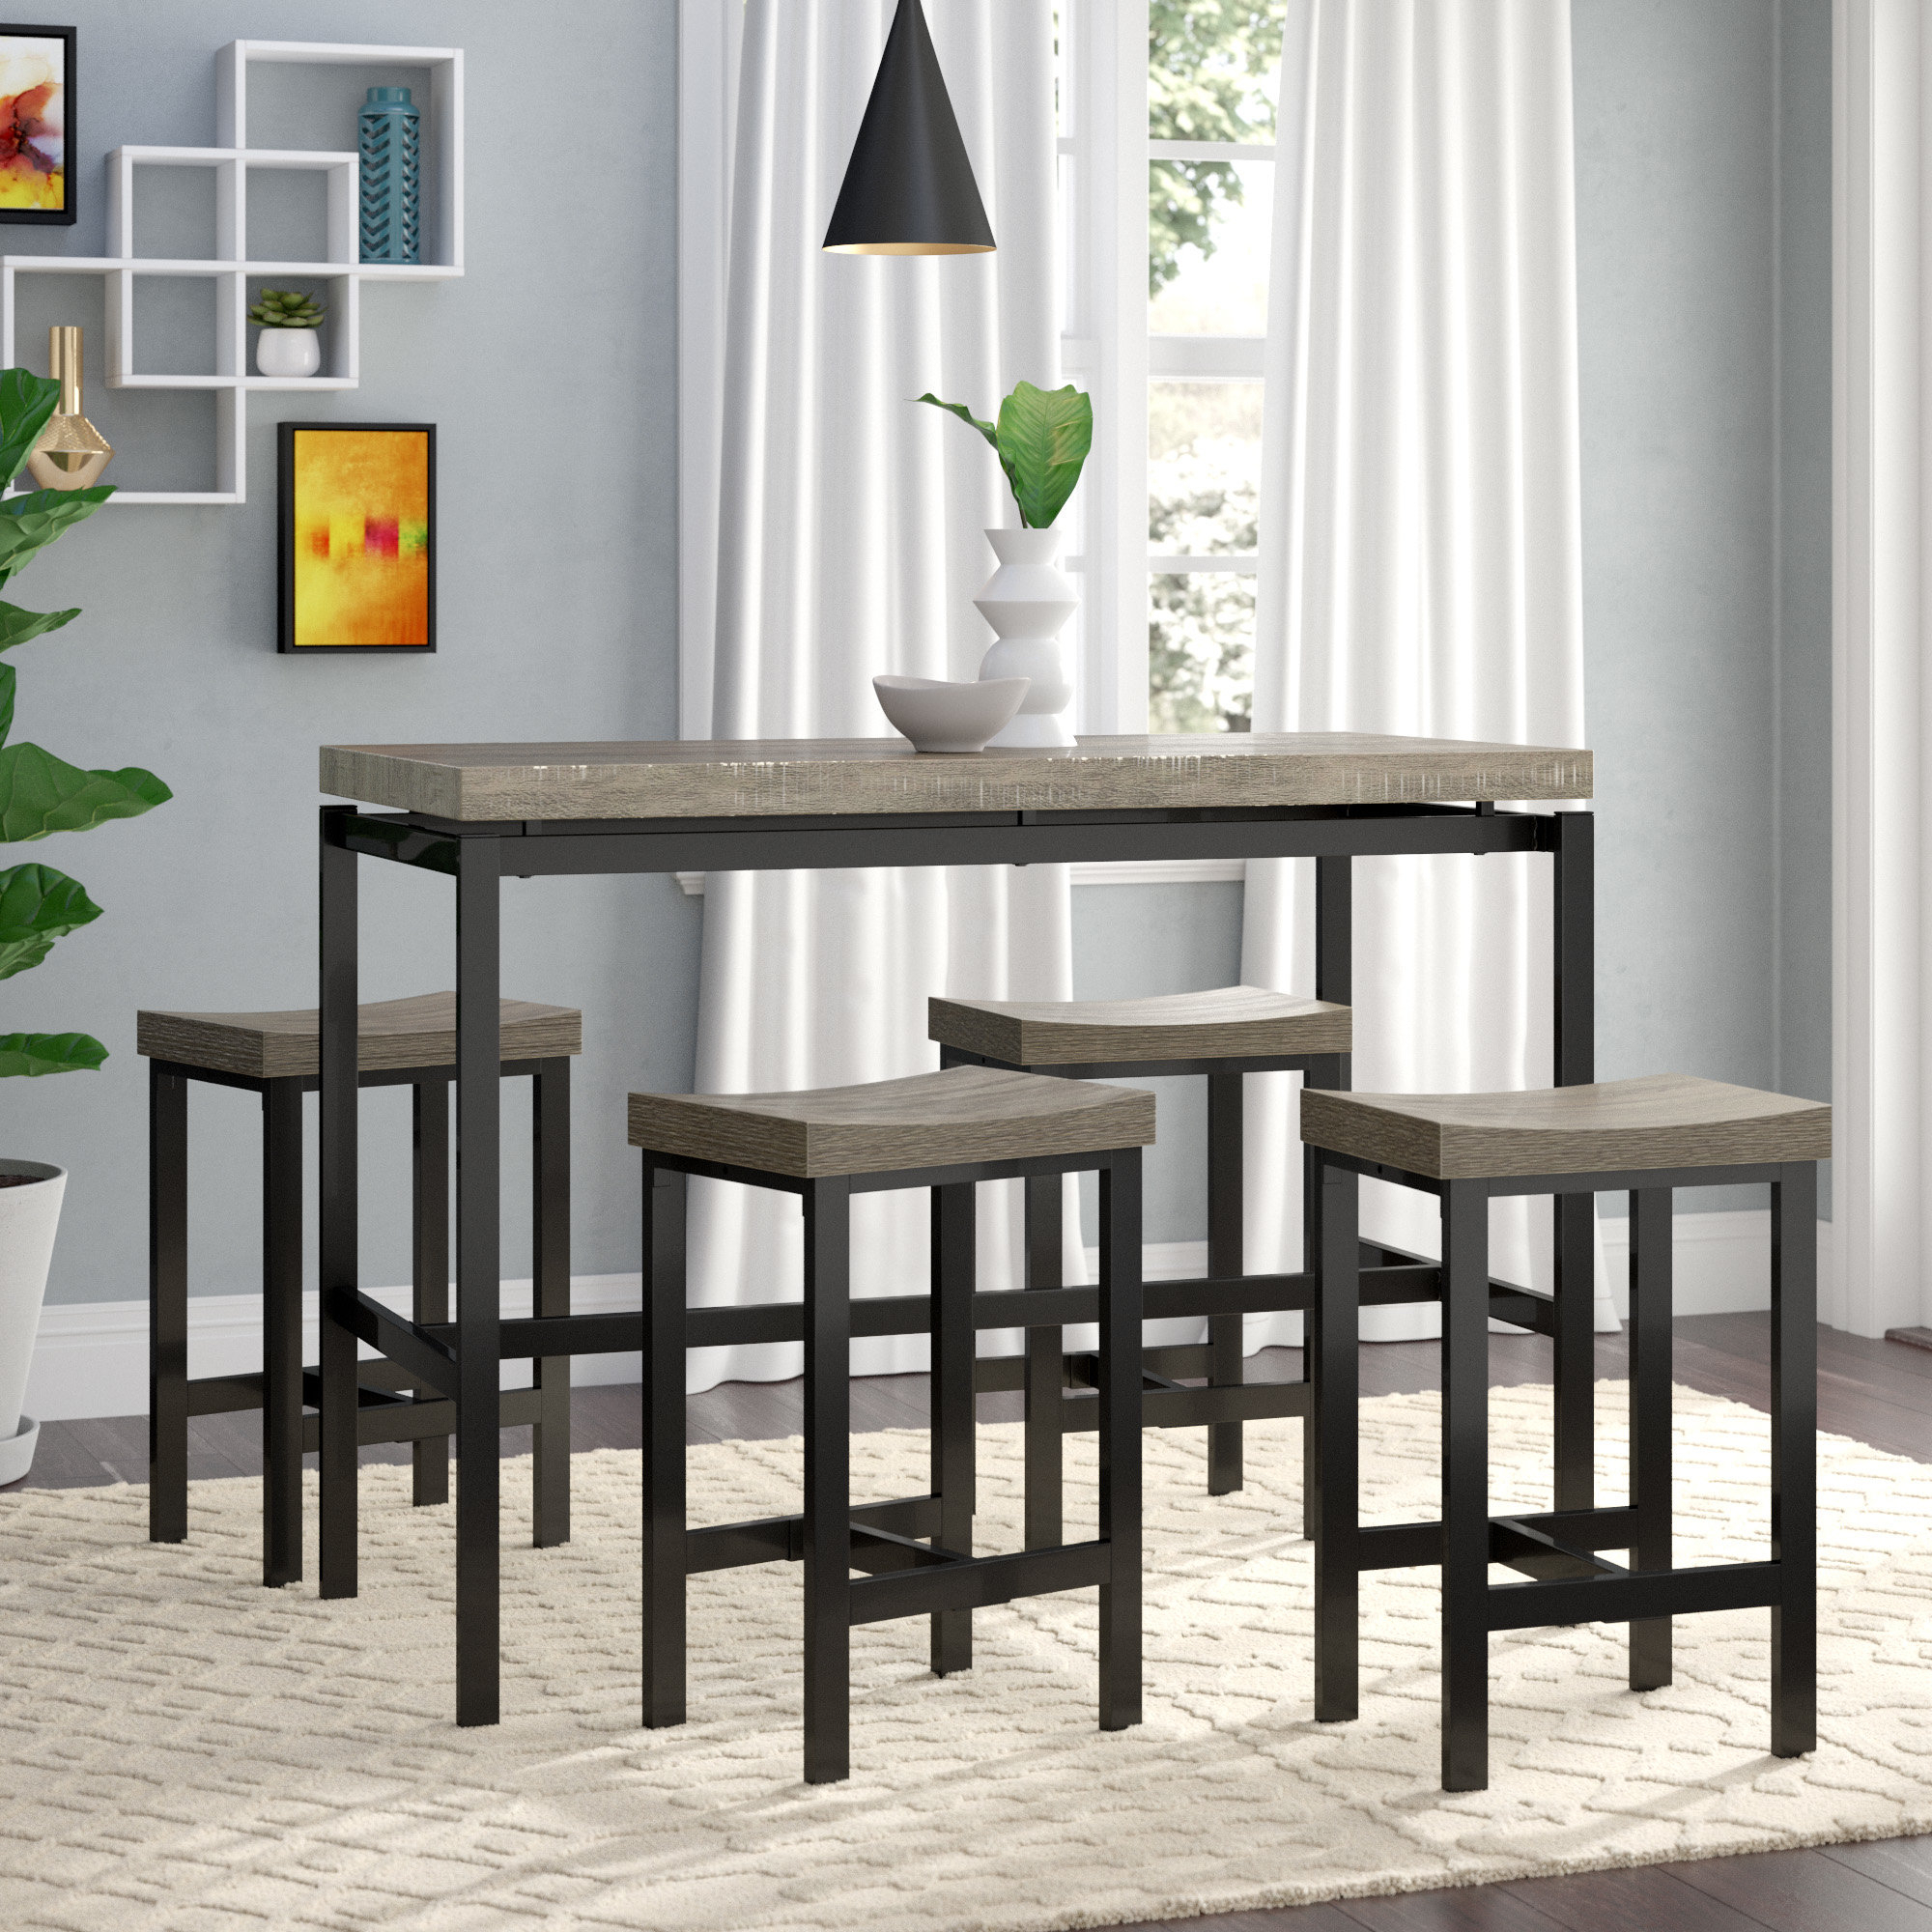 Wayfair Throughout Trendy Miskell 3 Piece Dining Sets (View 13 of 25)